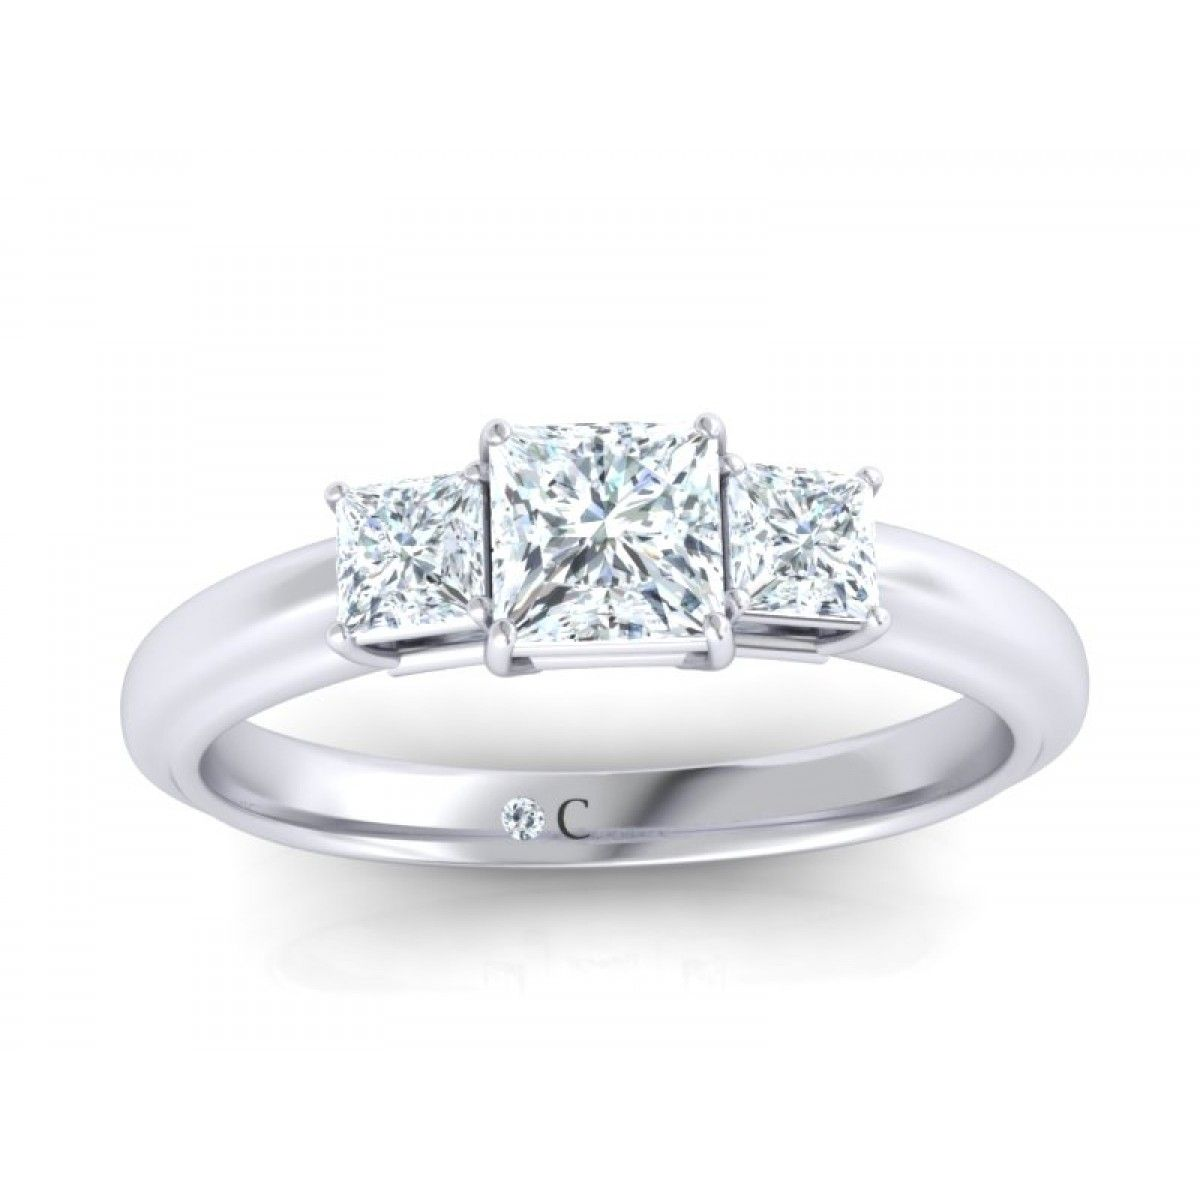 three stone princess cut diamond engagement ring set in white gold